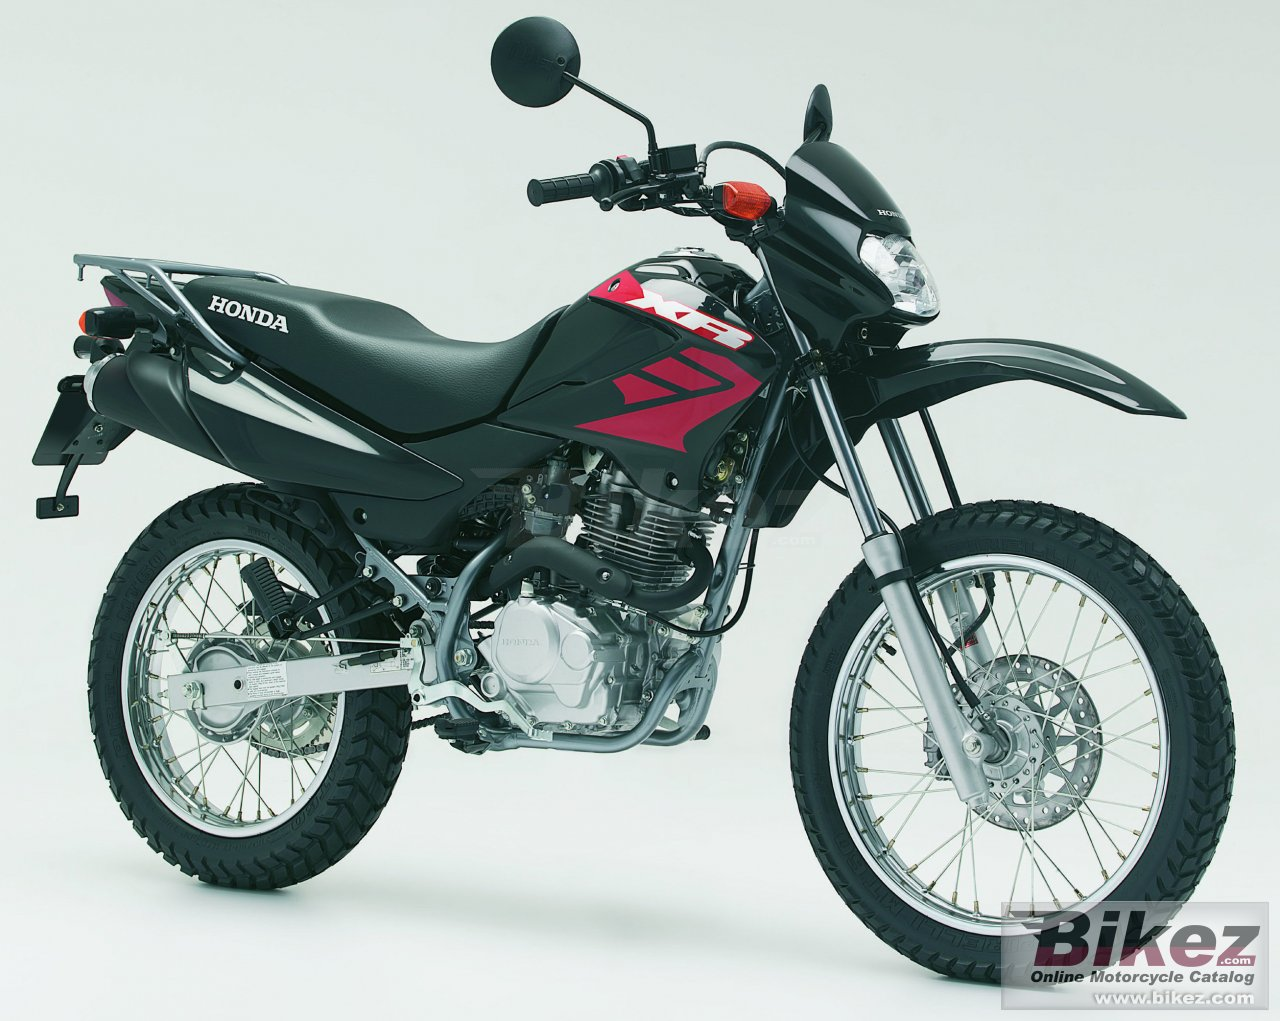 Big Honda xr 125 l picture and wallpaper from Bikez.com